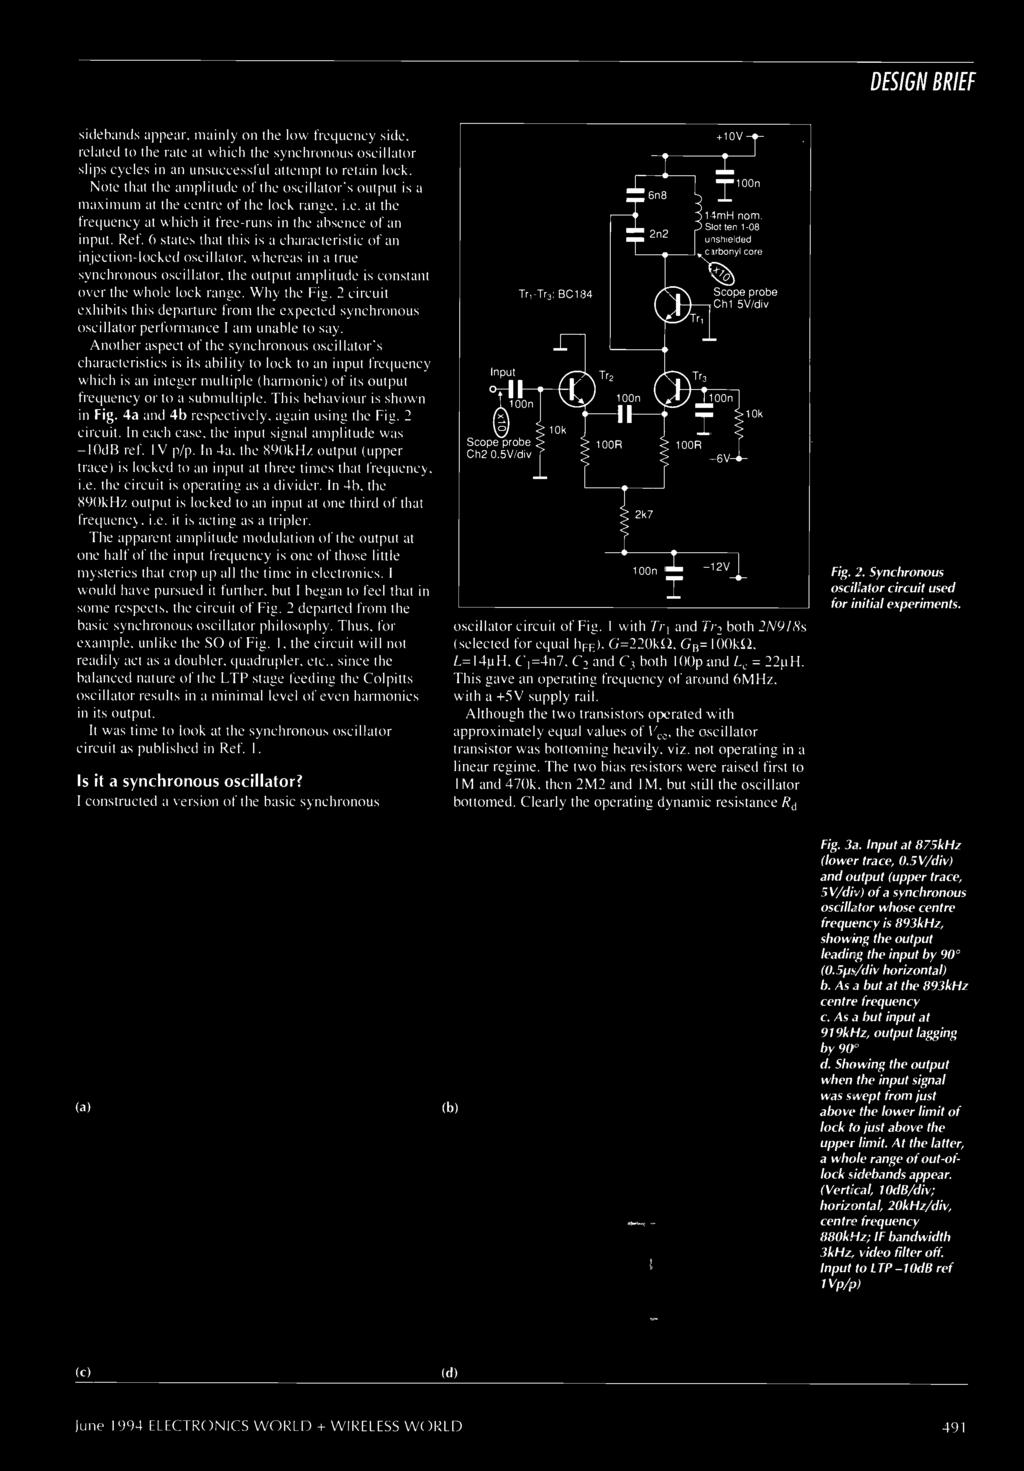 World Wireless Pdf Dcdc Voltage Doubler Simplest Possible Circuit Youtube The Apparent Amplitude Modulation Of Output At One Half Input Frequency Is